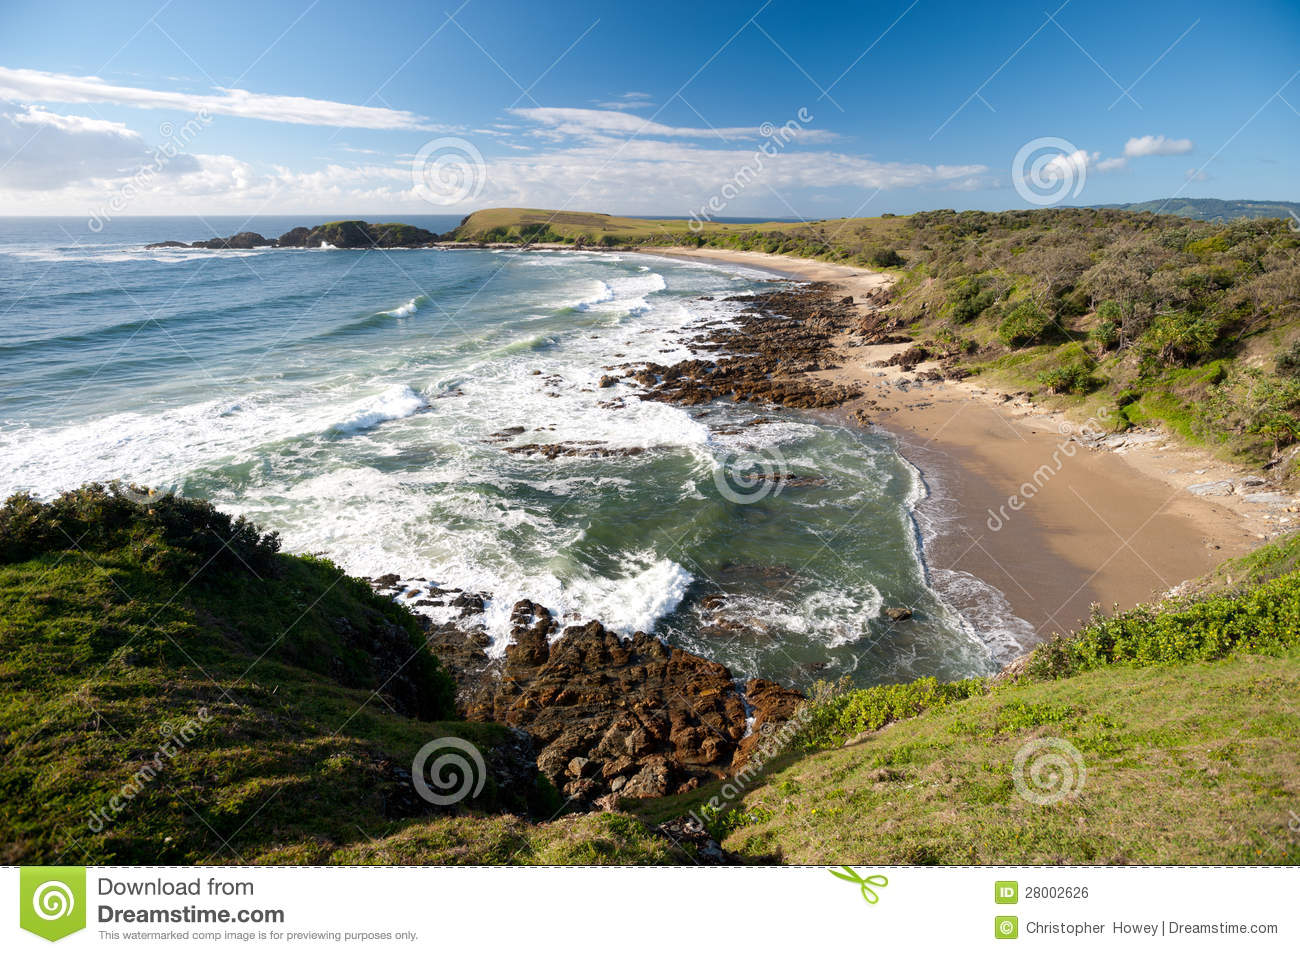 Emerald Australia  city photos : Emerald Beach In Australia Royalty Free Stock Image Image: 28002626